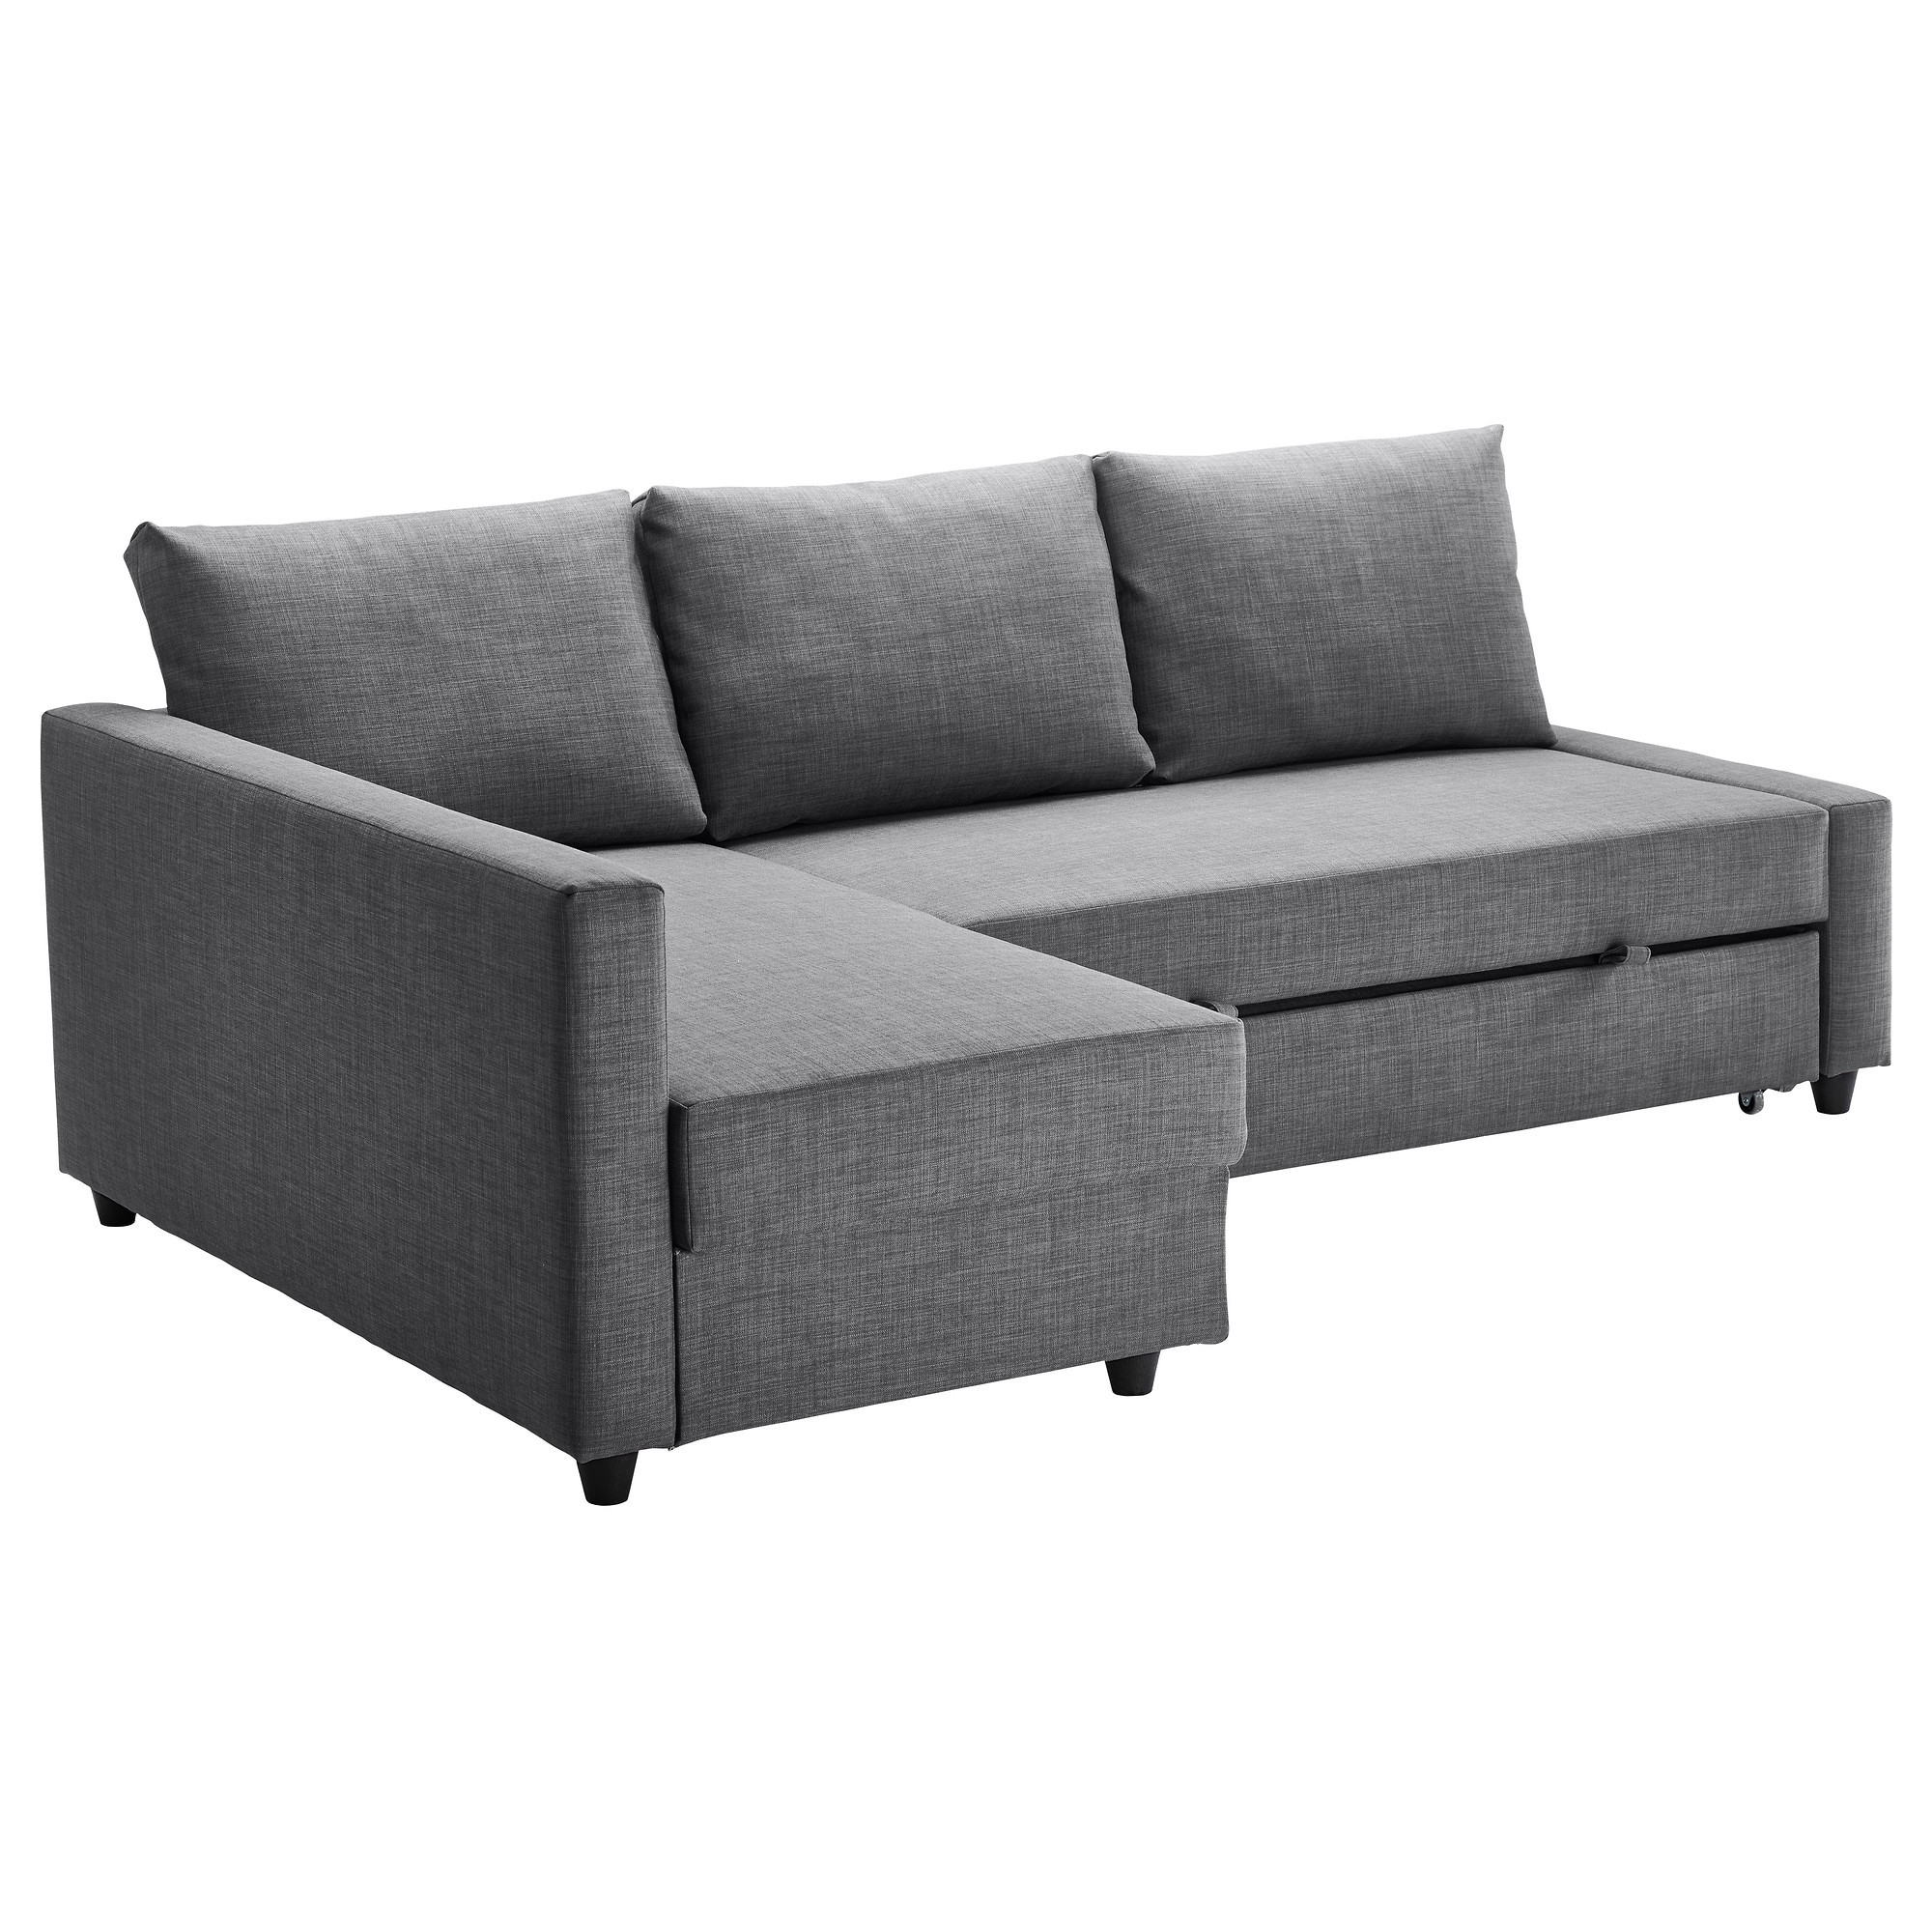 Fashionable Awesome Chaise Lounge Sleeper – Buildsimplehome Inside Lucy Dark Grey 2 Piece Sleeper Sectionals With Raf Chaise (View 6 of 20)